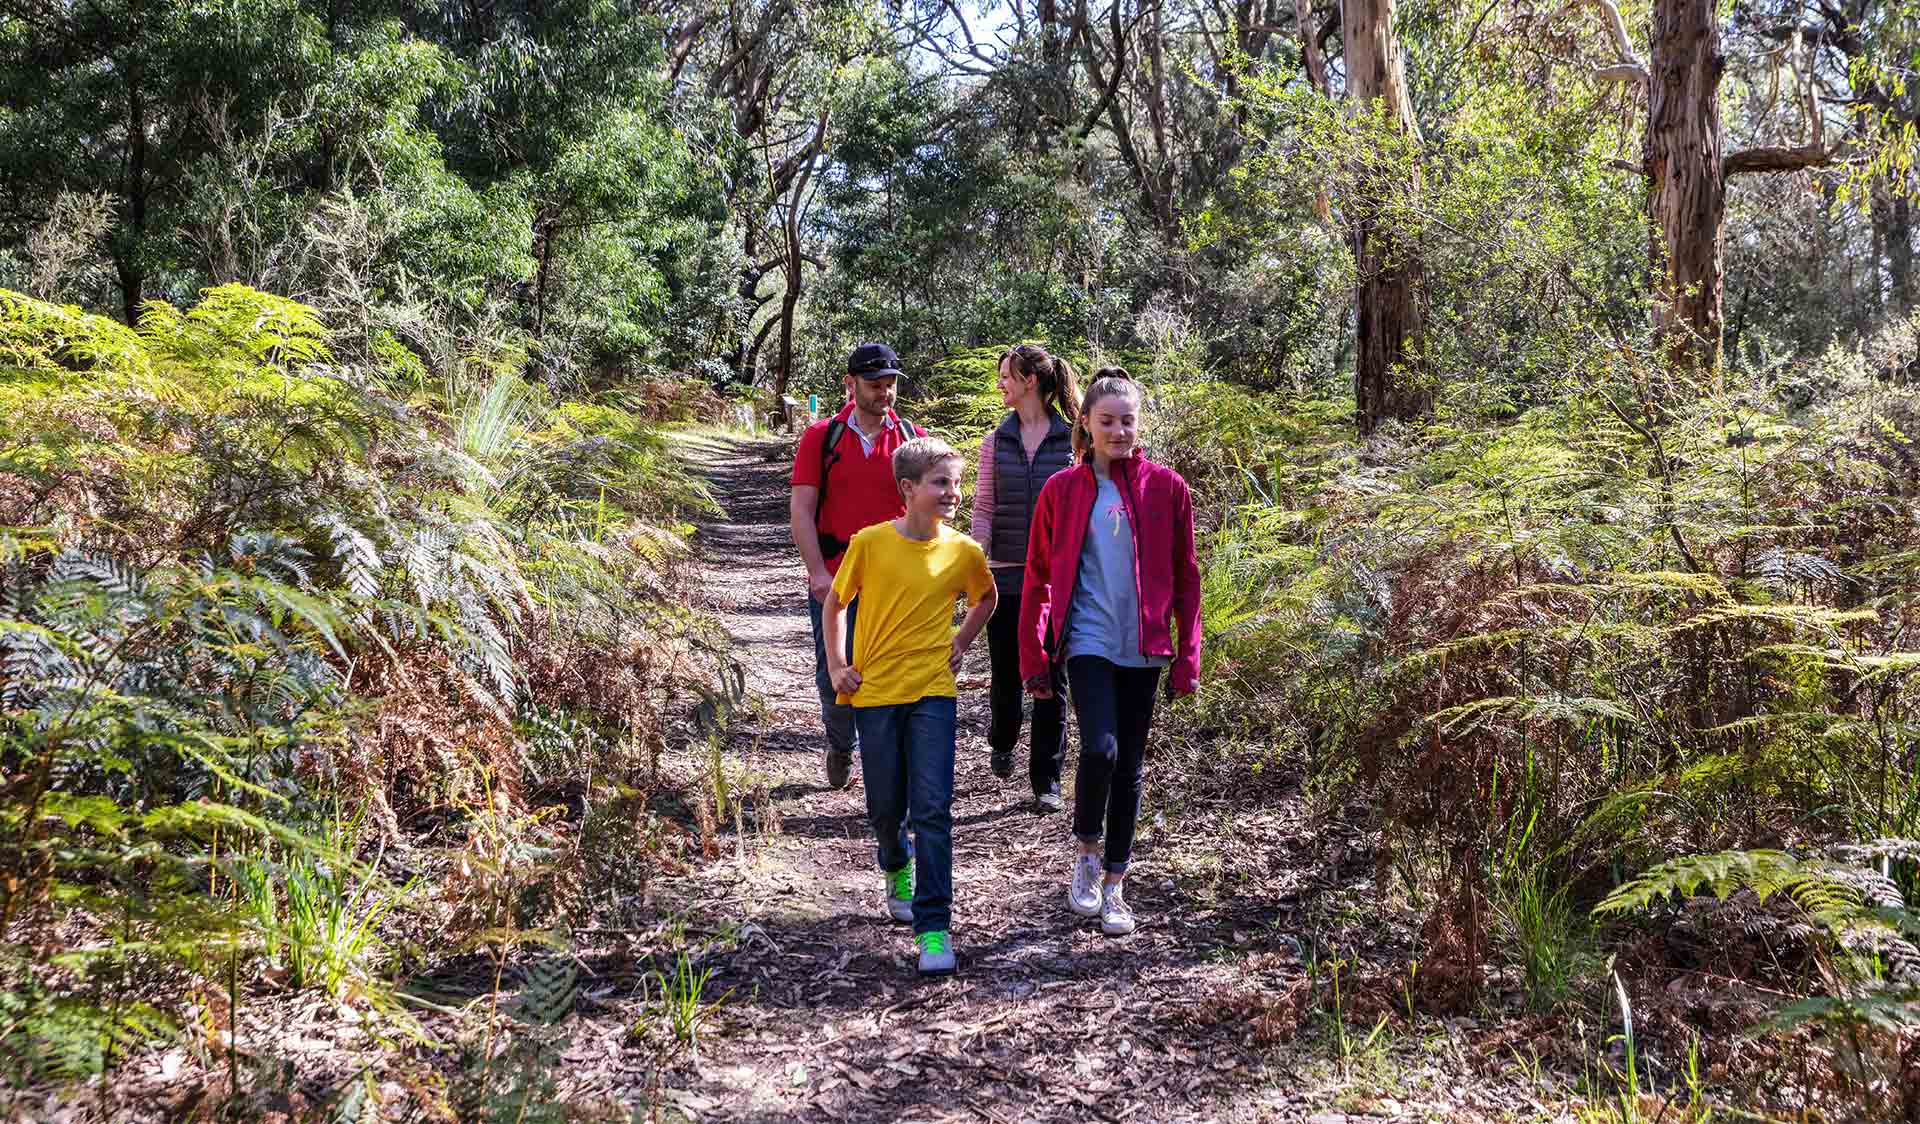 A family of four walking along a track at Baldrys Crossing in Mornington Peninsula National Park